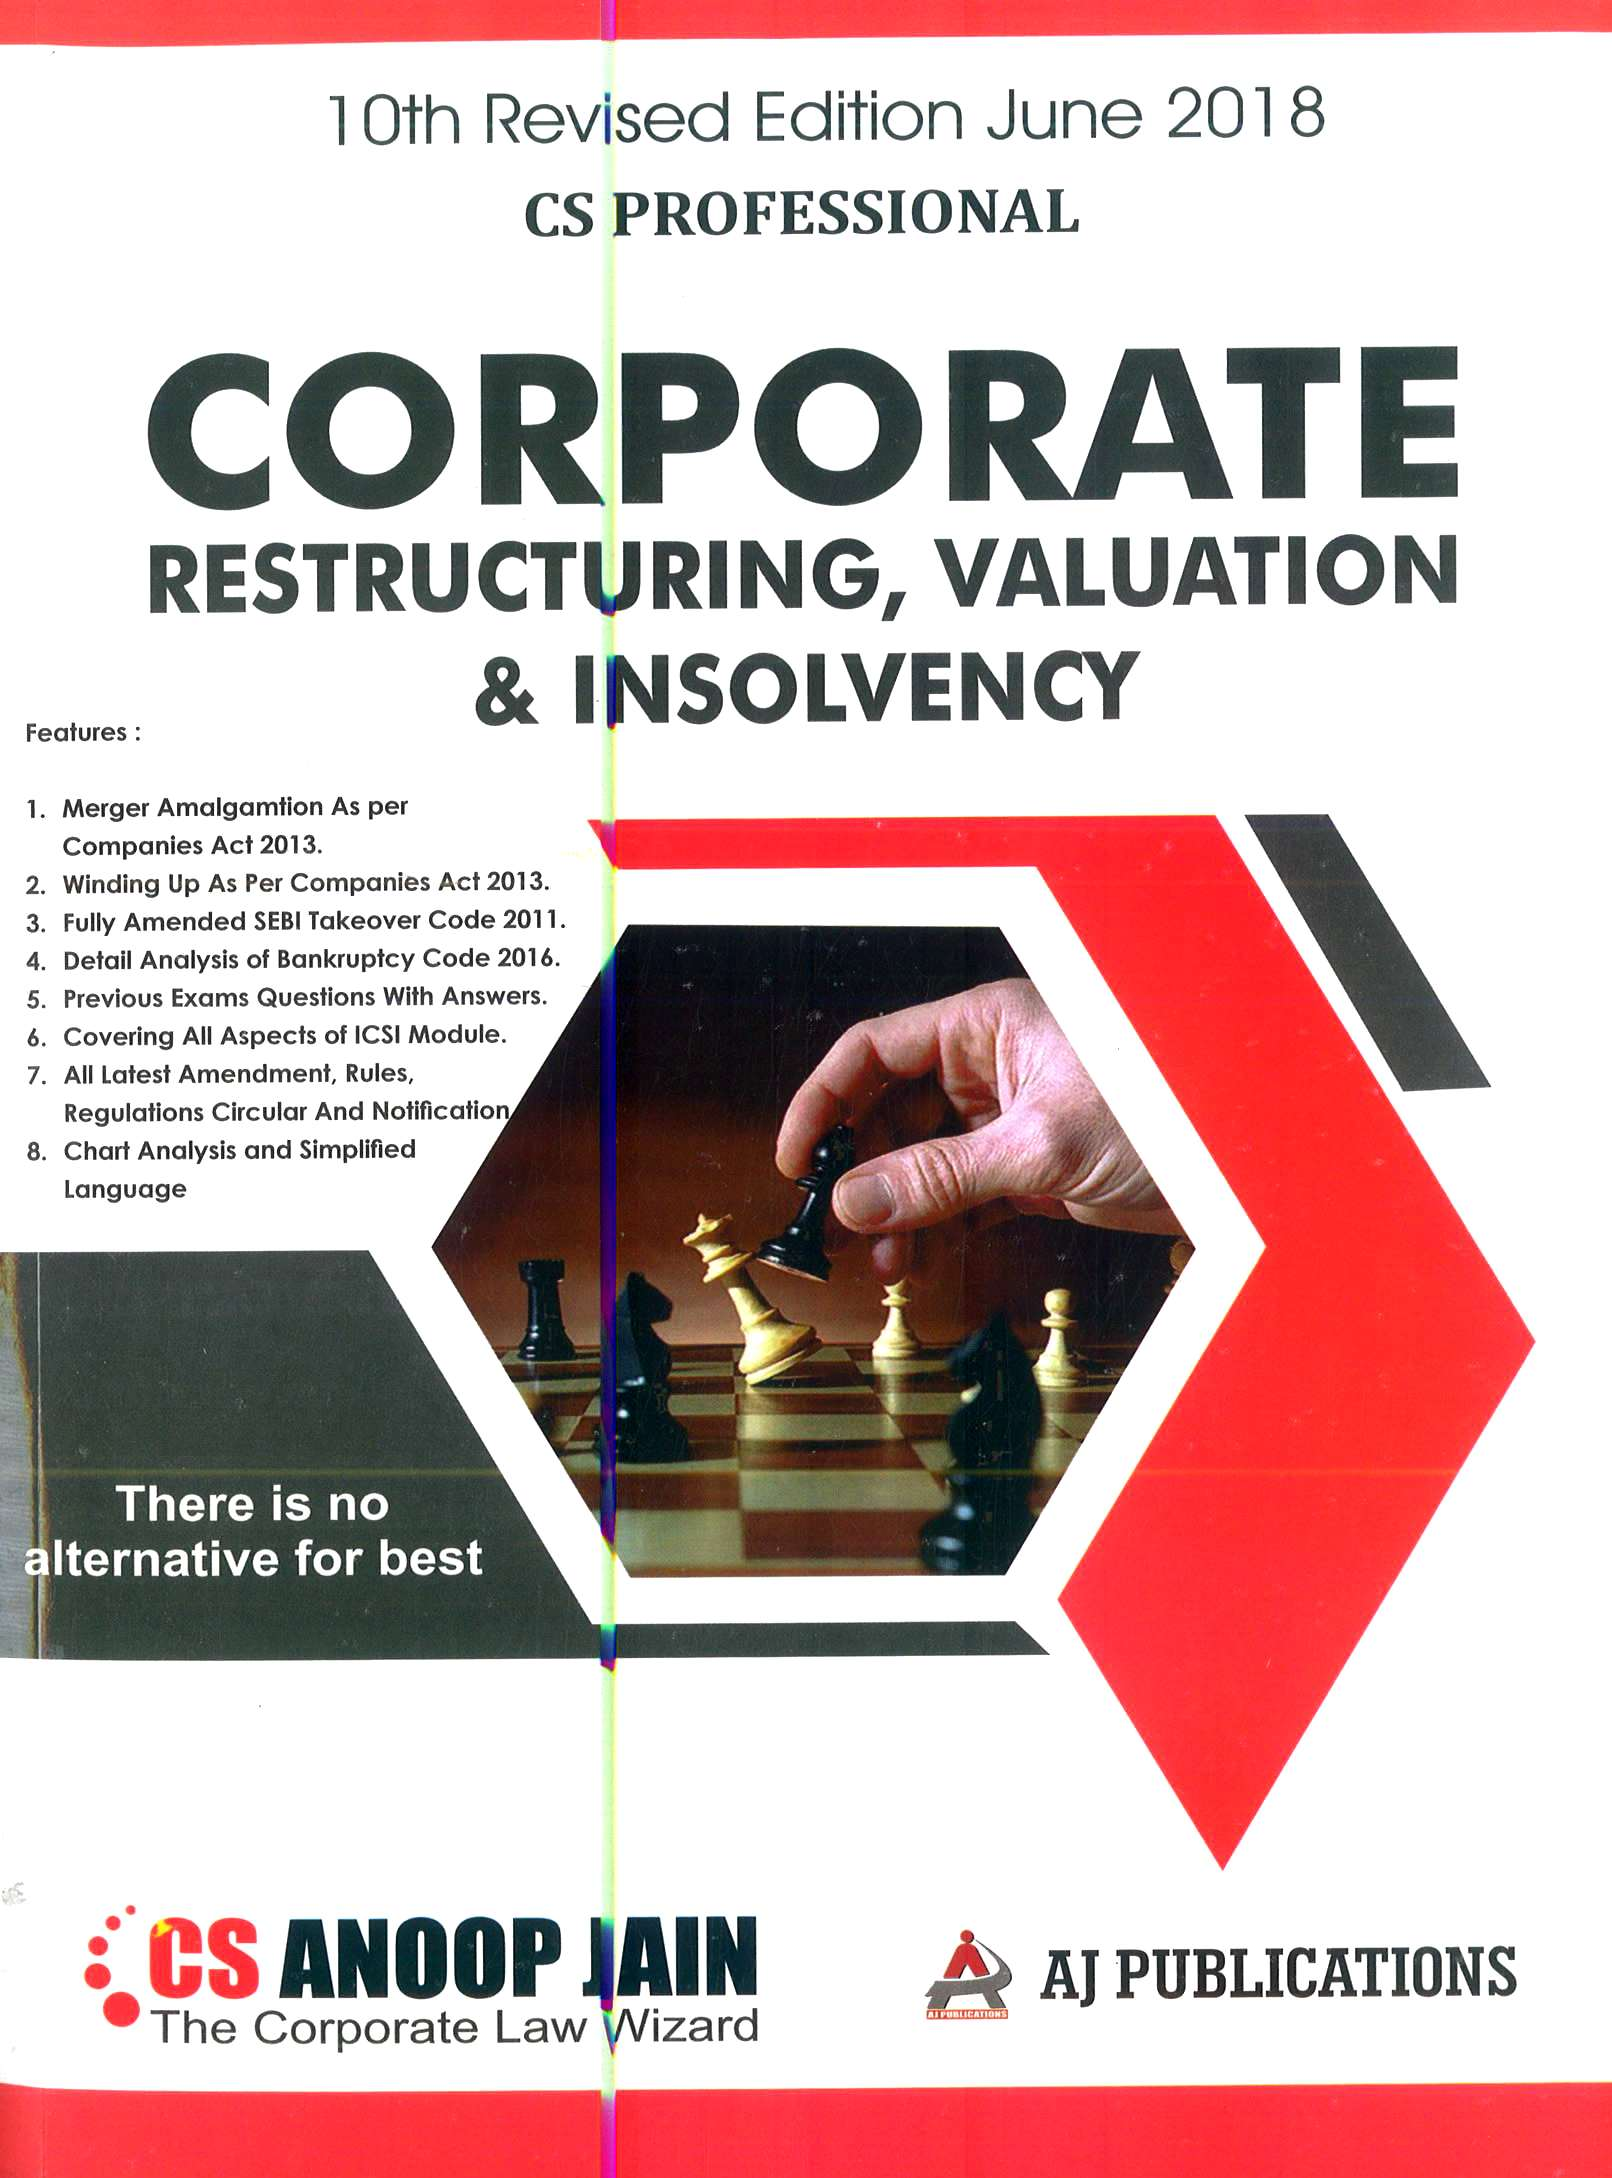 Corporate Restructuring, Valuation and Insolvency for CS Professional by CS Anoop Jain (AJ Publishing) for June 2018 examination 10th Revised Edition 2018